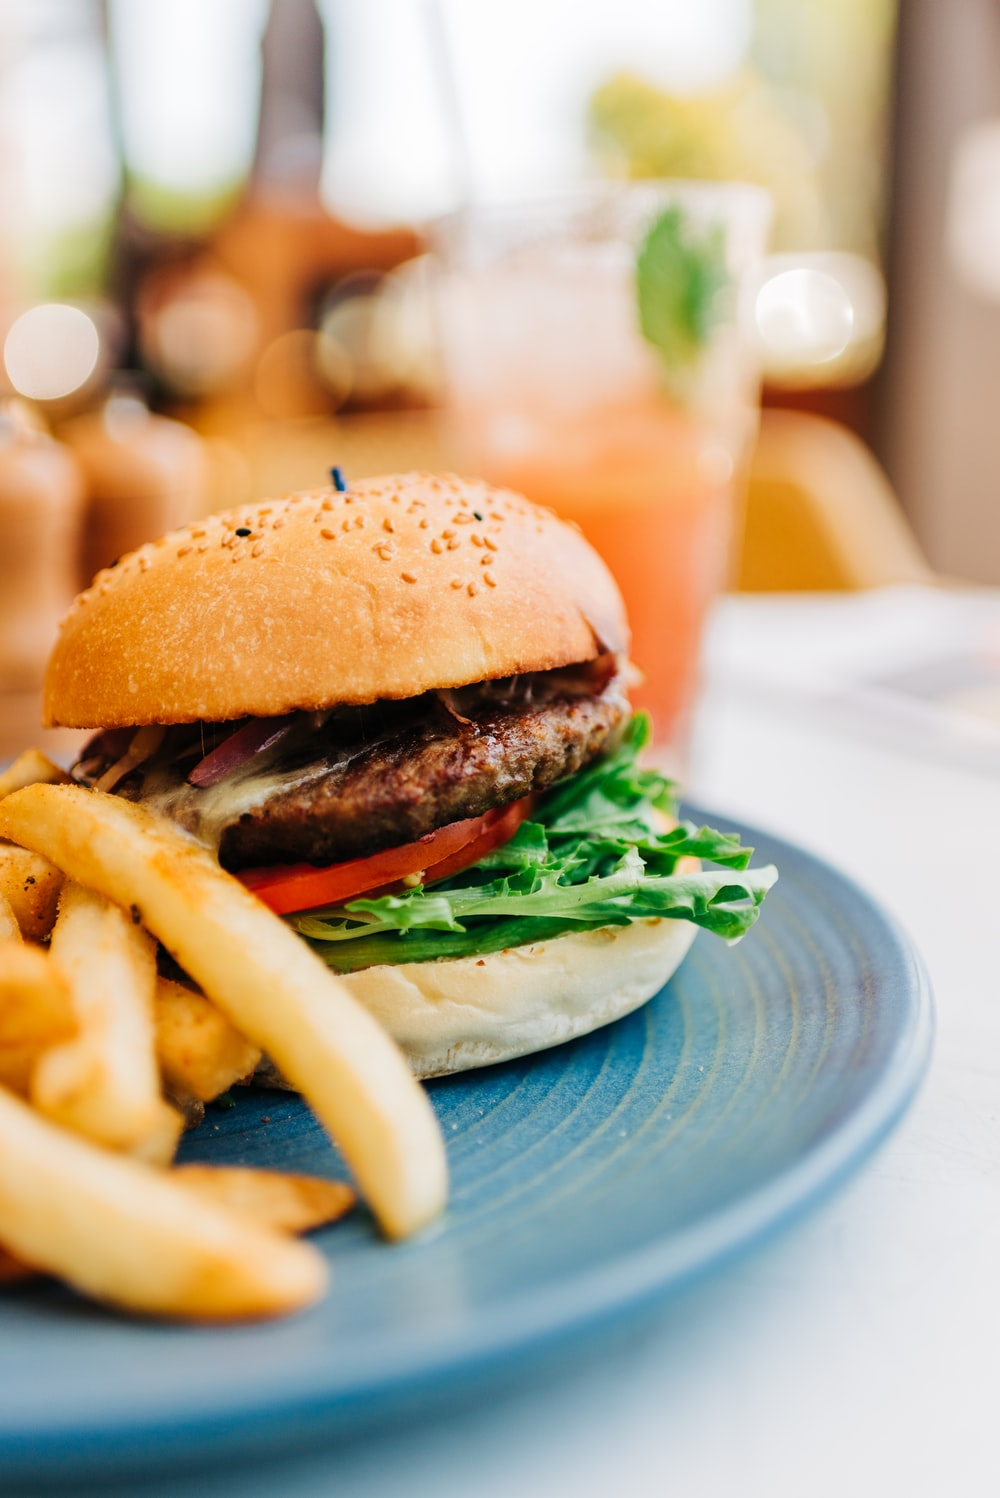 burger with lettuce and tomato on blue ceramic plate